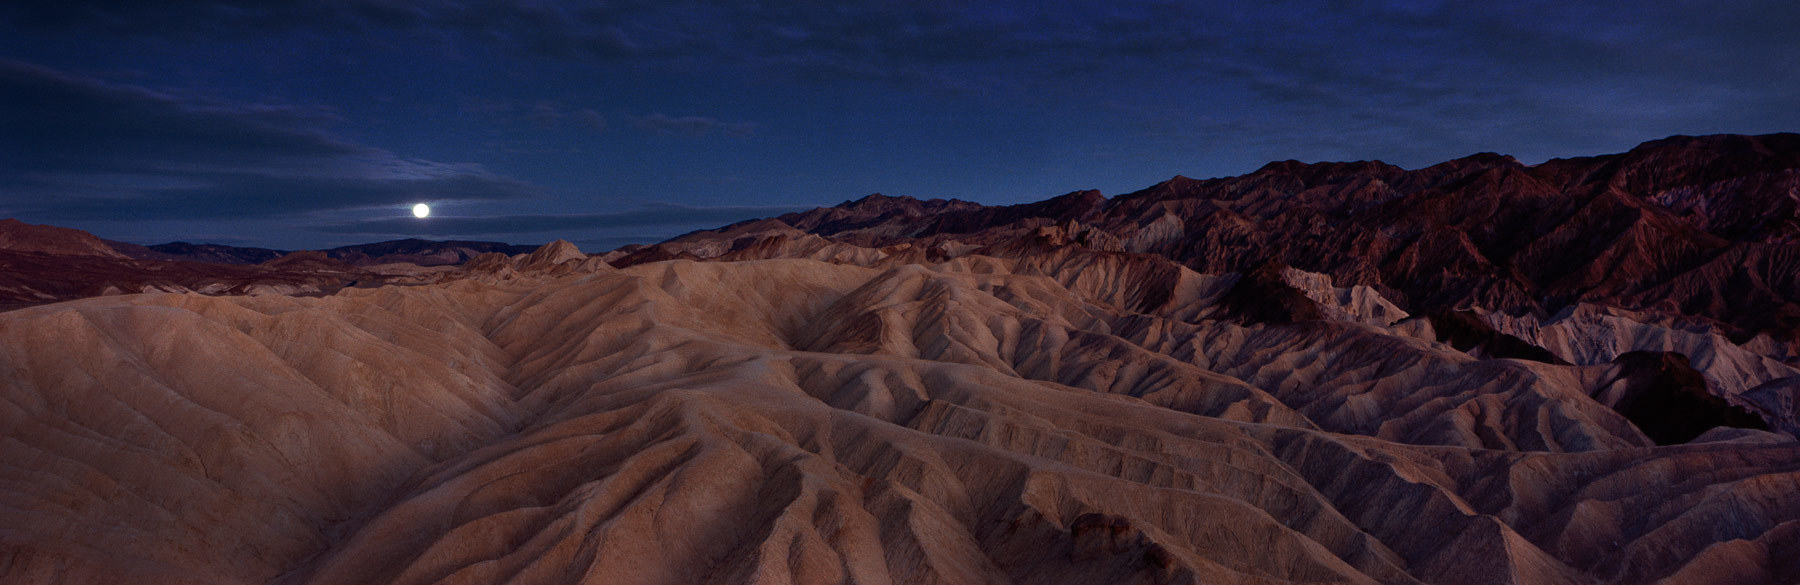 Lightbox_jorstad_death_valley_vi5unn